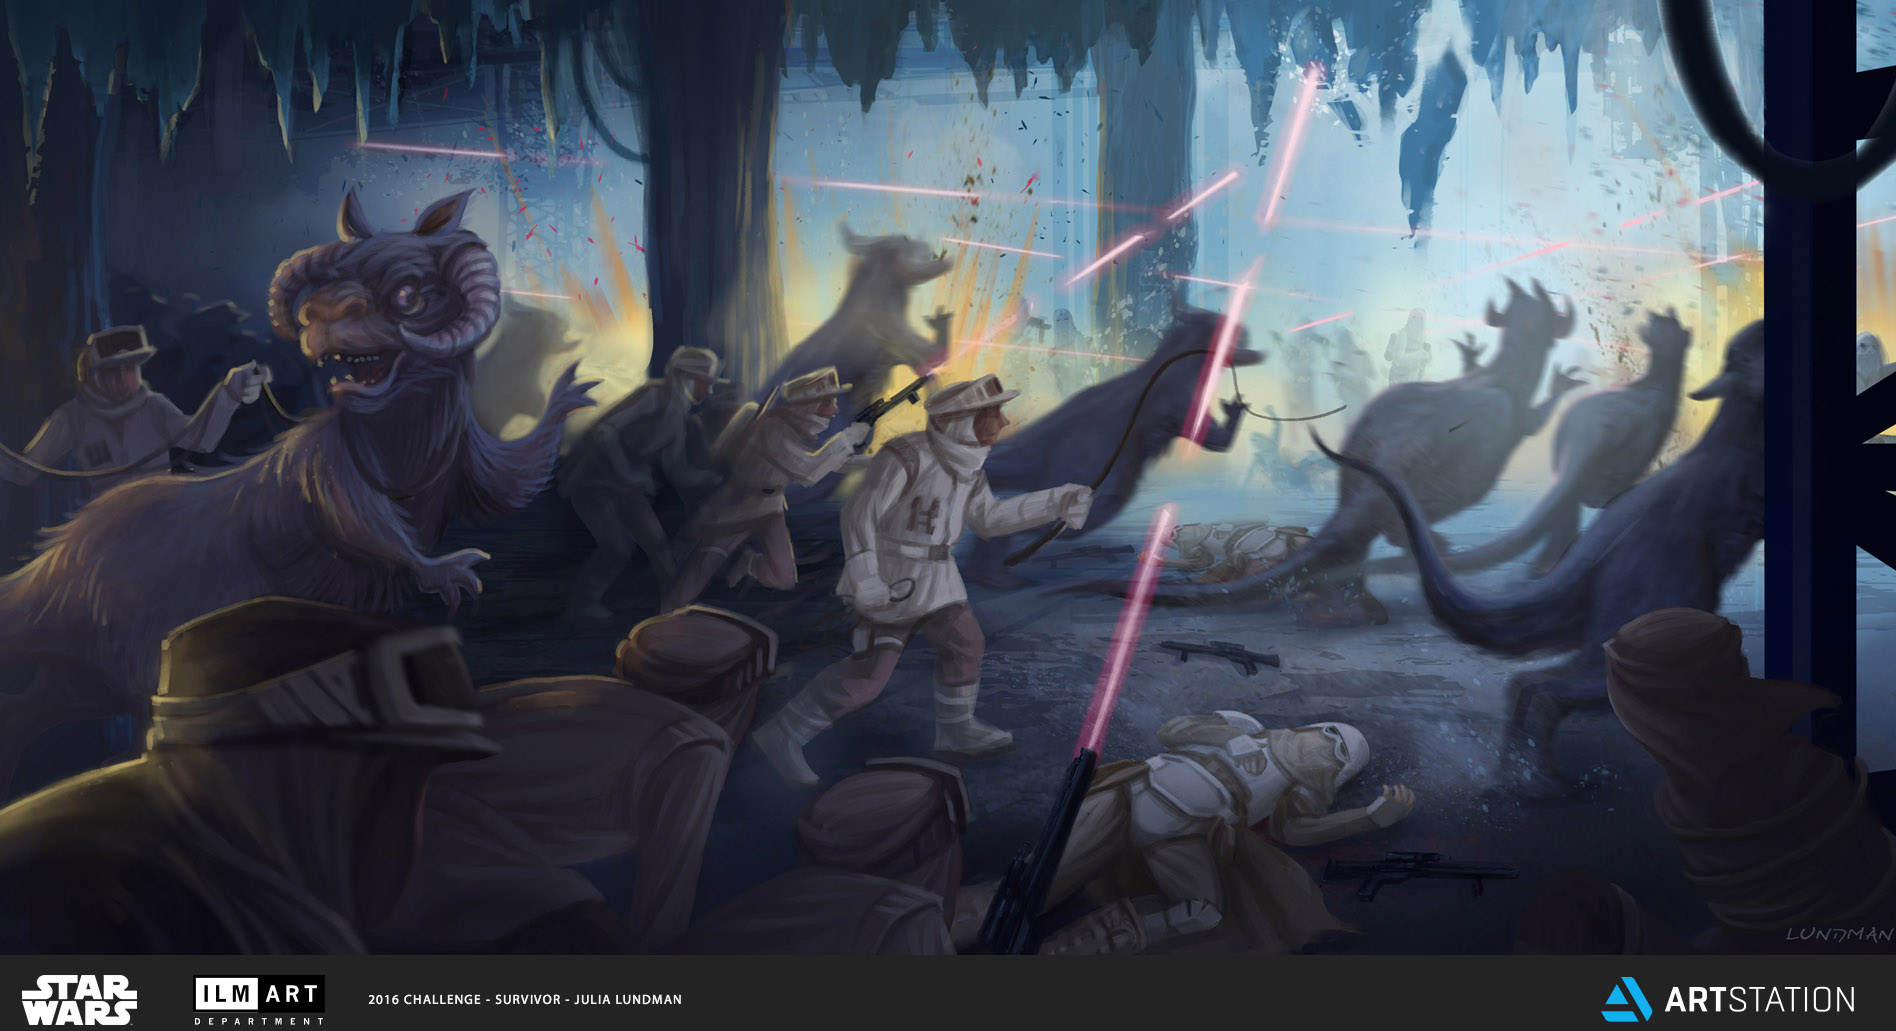 KEYFRAME 5: THE REBELS, WHO WERE HELD CAPTIVE IN A TAUNTAUN PEN, DEVISED A PLAN TO SCARE THE BEASTS INTO A PANIC, CAUSING A STAMPEDE AND NECESSARY DIVERSION. WHILE THE STAMPED DISTRACTED THE SNOWTROOPERS, THE REBELS LOOSENED THEIR TIES AND OVERWHELMED THE SITUATION, USING CAPTURED BLASTERS TO BRING ICE DOWN FROM THE CEILING.